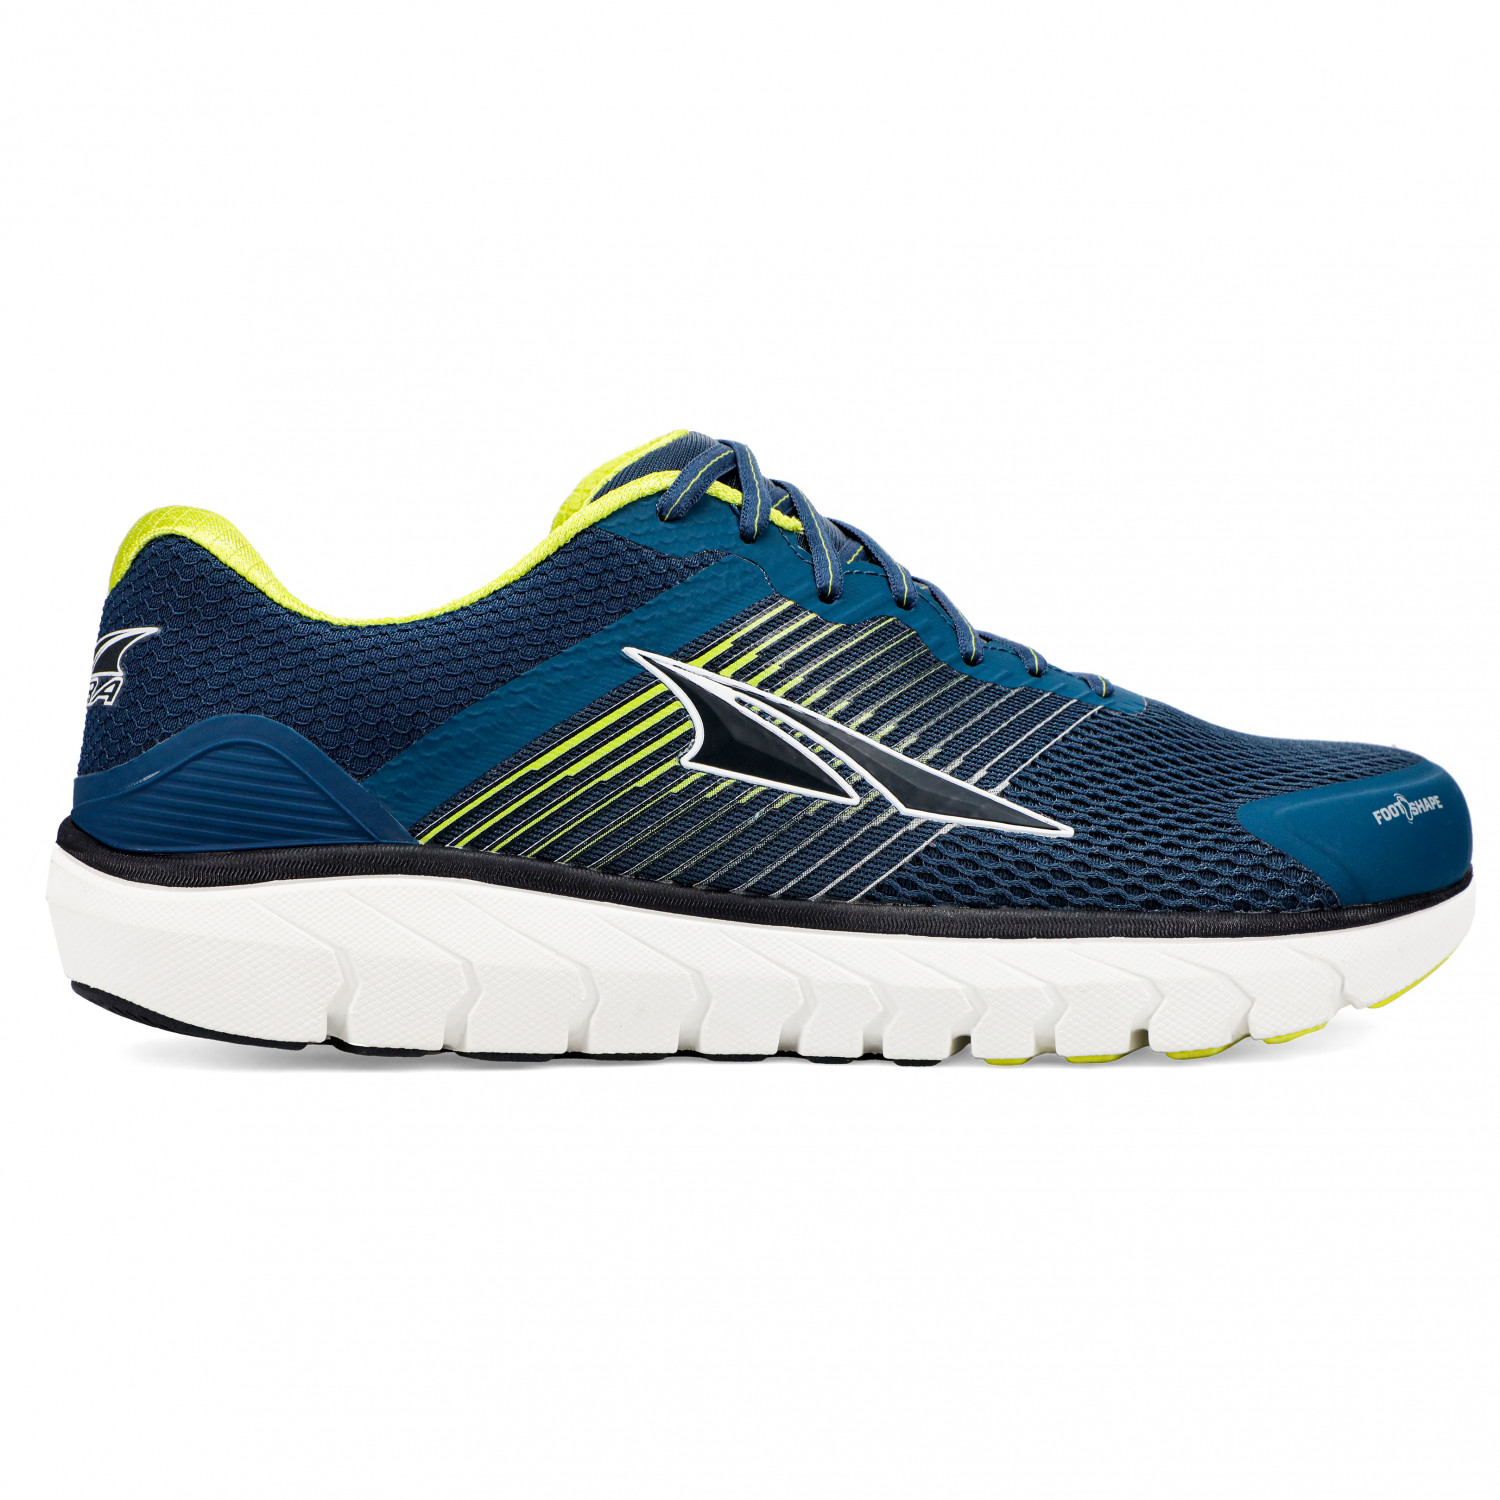 Altra Provision 4 - Running shoes Men's